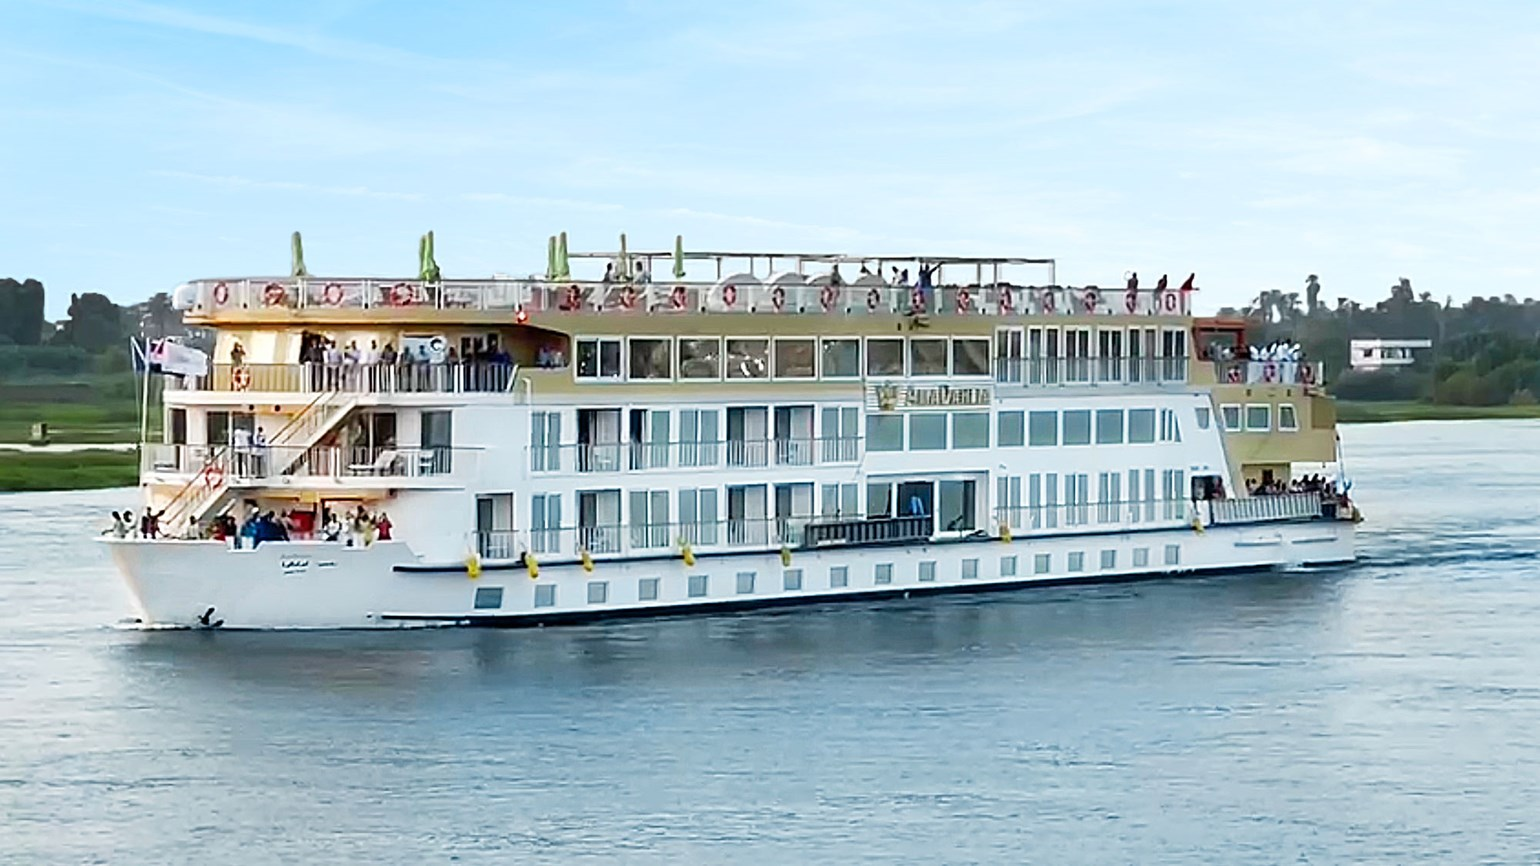 AmaWaterways' new ship makes debut in Egypt